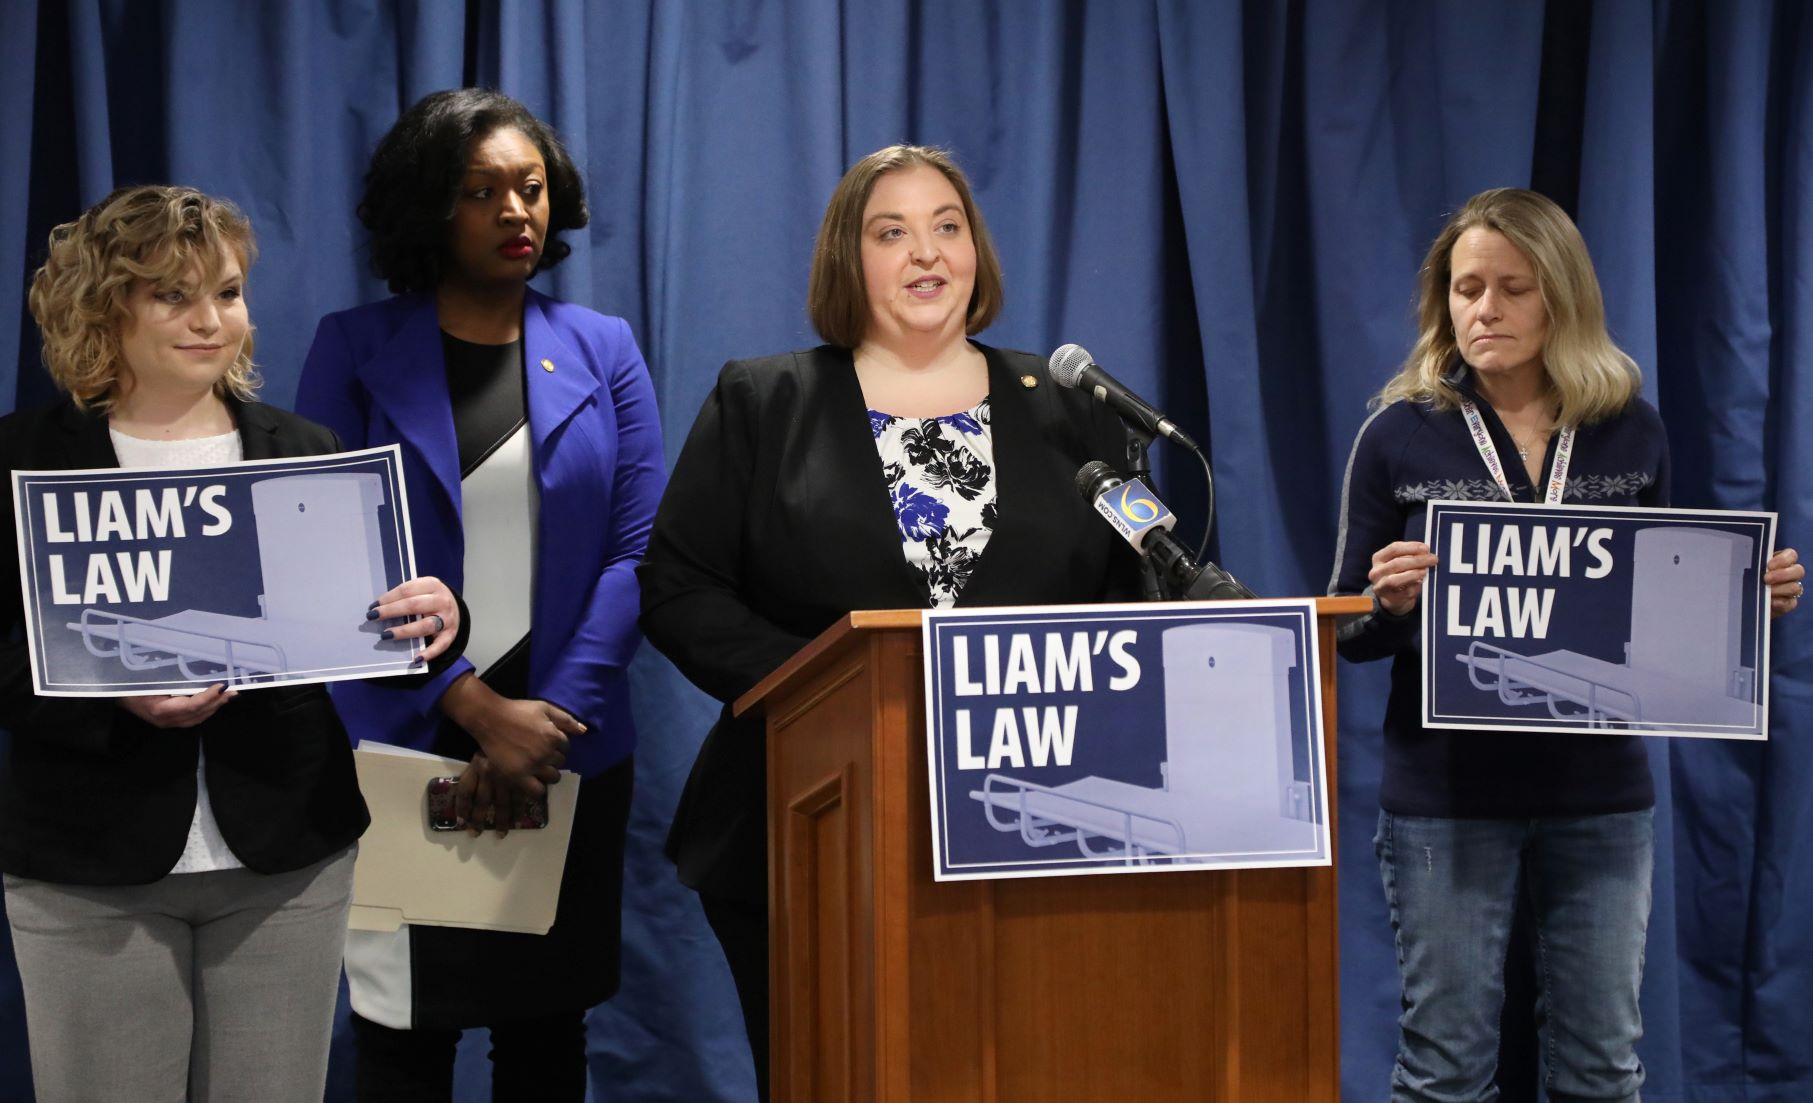 """State Rep. Lori Stone (D-Warren) unveiling """"Liam's Law"""" with State Rep. Sarah Anthony (D-Lansing); Jessica Gomez of Saginaw, Liam's mother (Left); and Amy Maes of Disability Network Oakland and Macomb (Right) at a press conference in Lansing on Thursday, Jan. 23, 2020 (Photo courtesy of House Democrats)."""